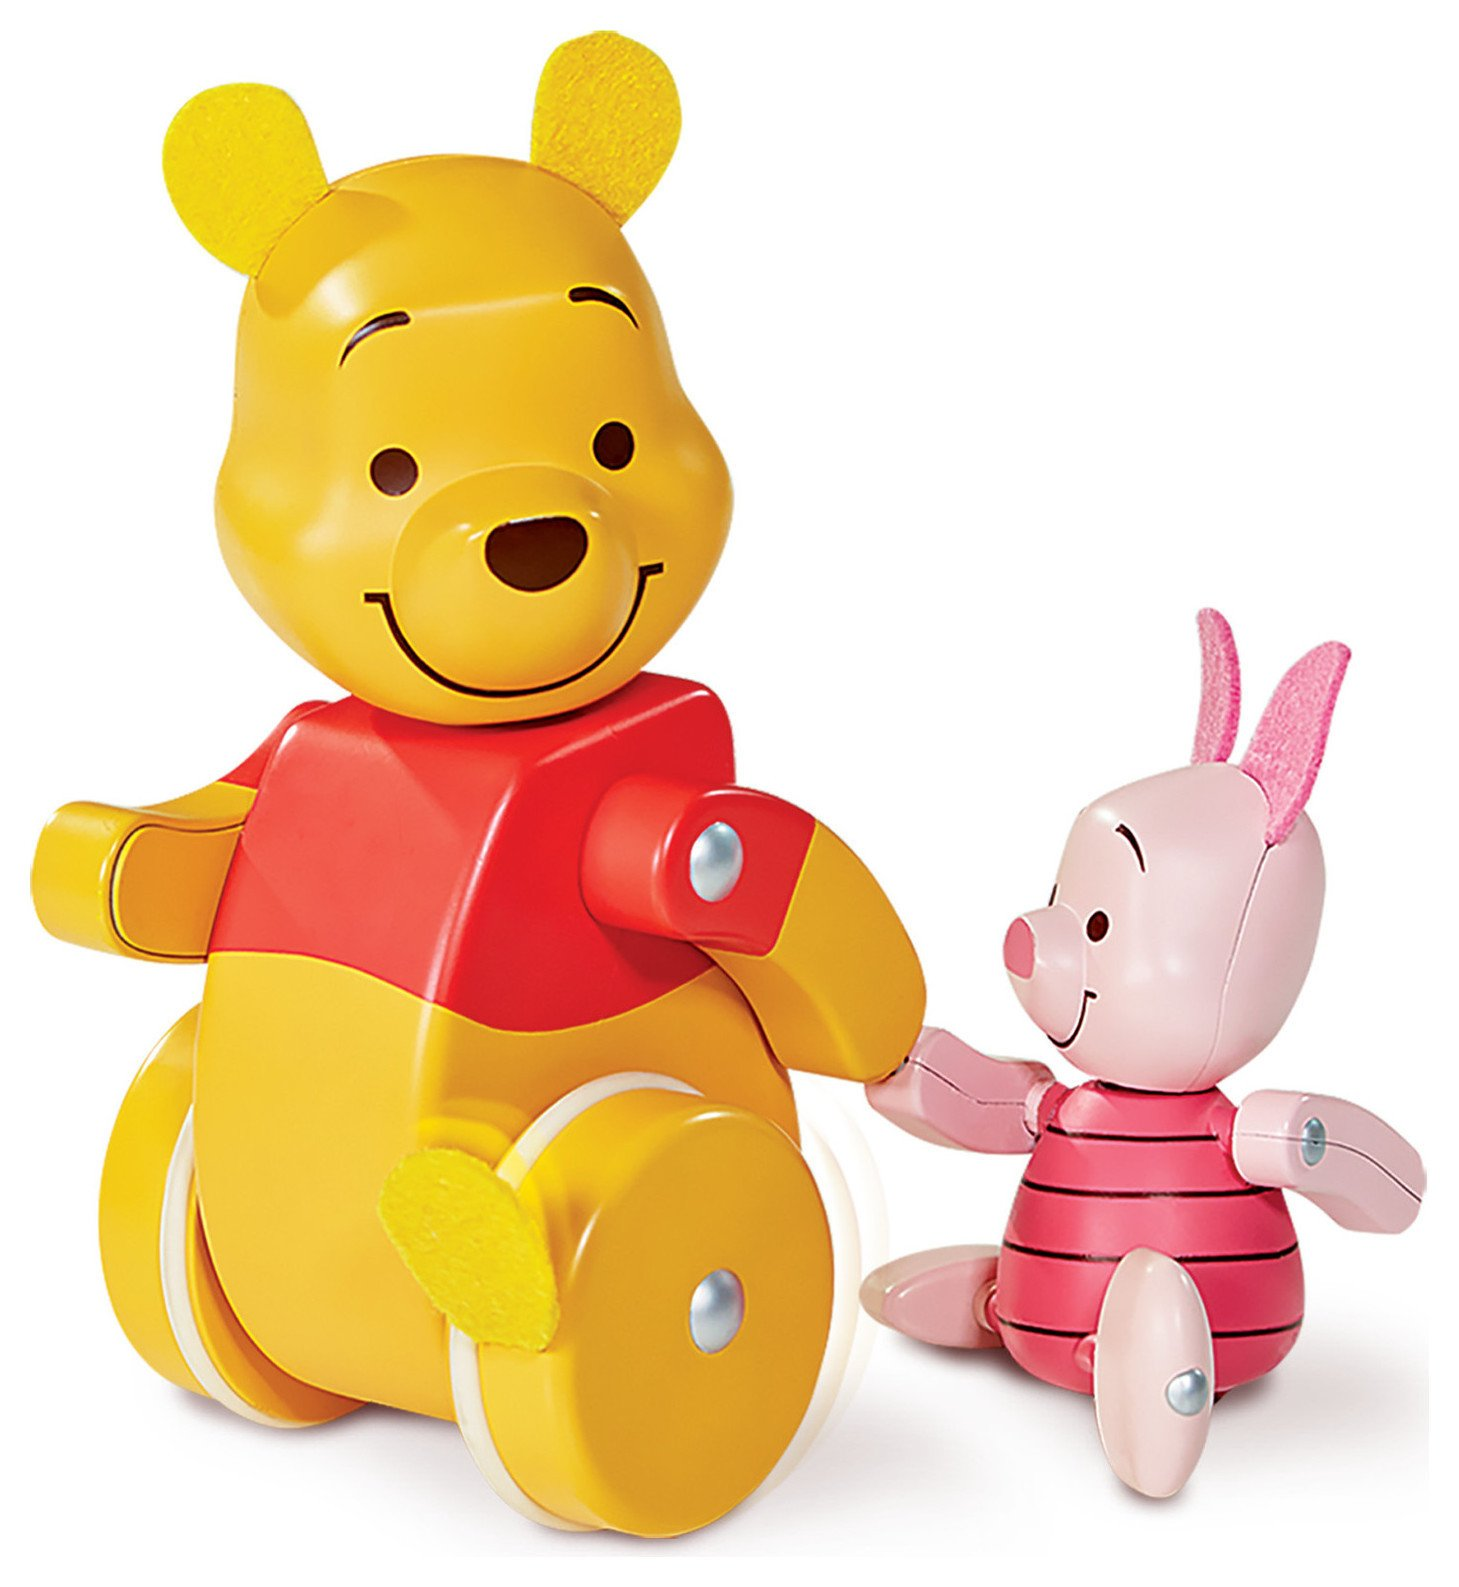 Winnie the Pooh Waddle and Follow Pooh and Piglet.